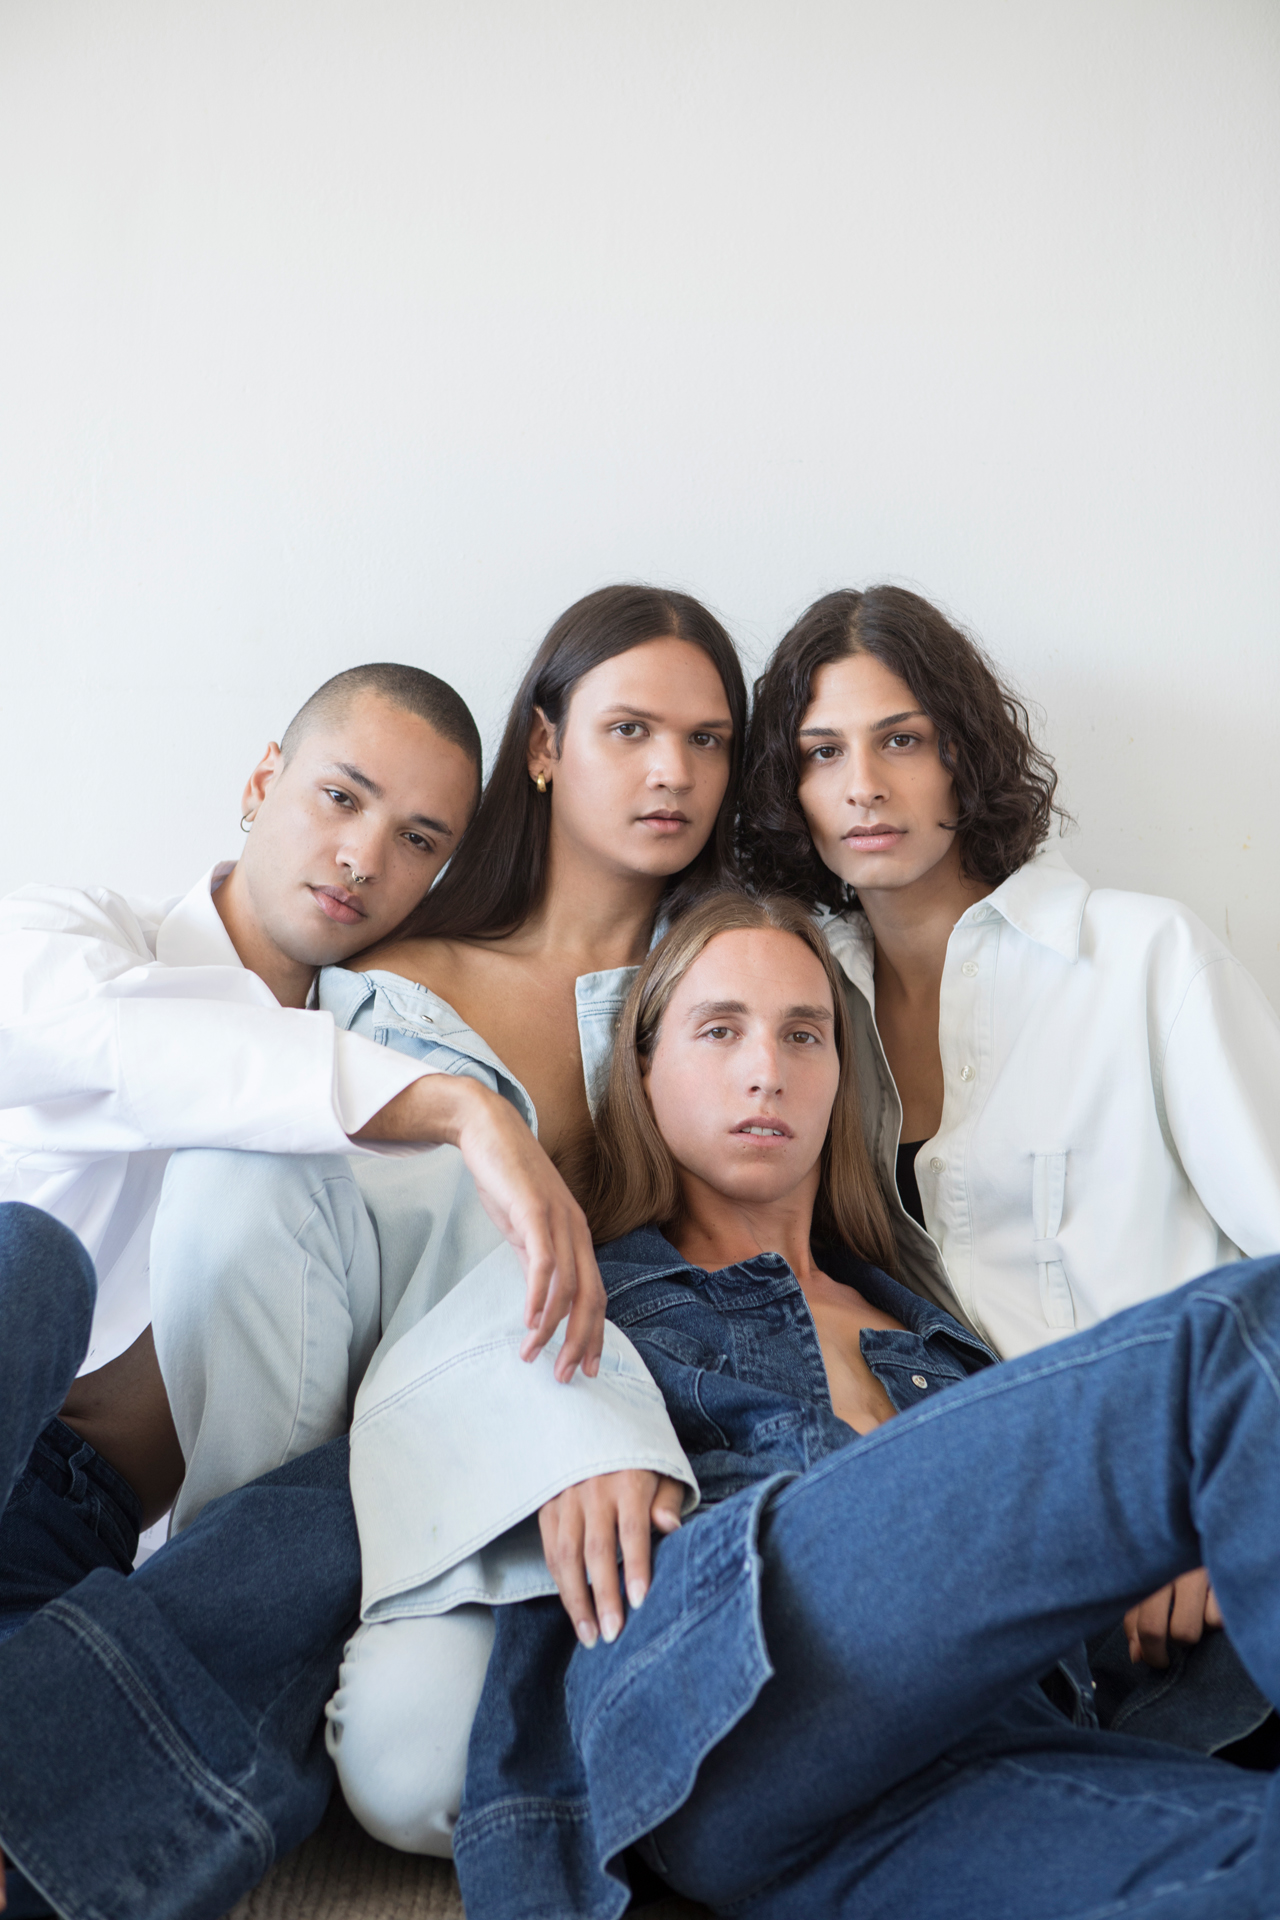 DENIM BLUE EDITION - Photography by Therese Fische / Hair and Make-Up Parisa Fard / Models Dimitris Leivadiotis, Phillip McLeod, Coline Cherry and Danielle Heide